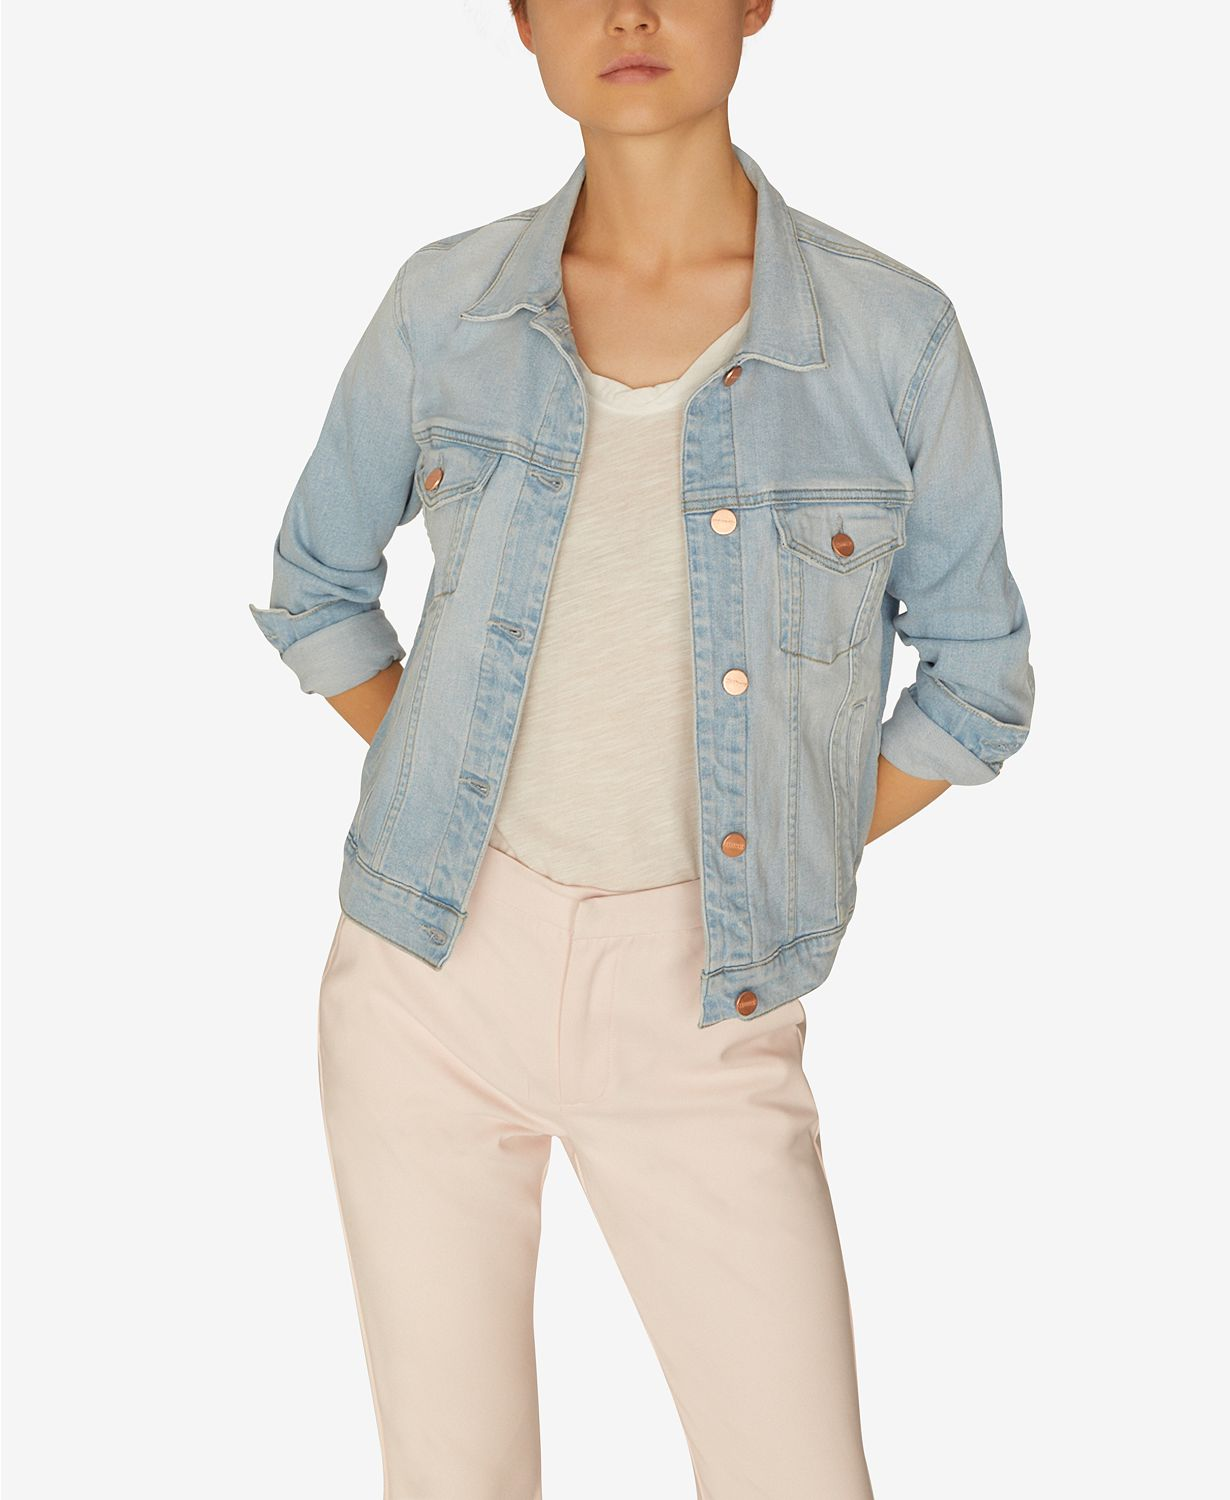 Sanctuary Kyle Denim Jacket. Come discover these Over 50 Fashion: Running Errands Comfy Cute Pieces! #fashionover50